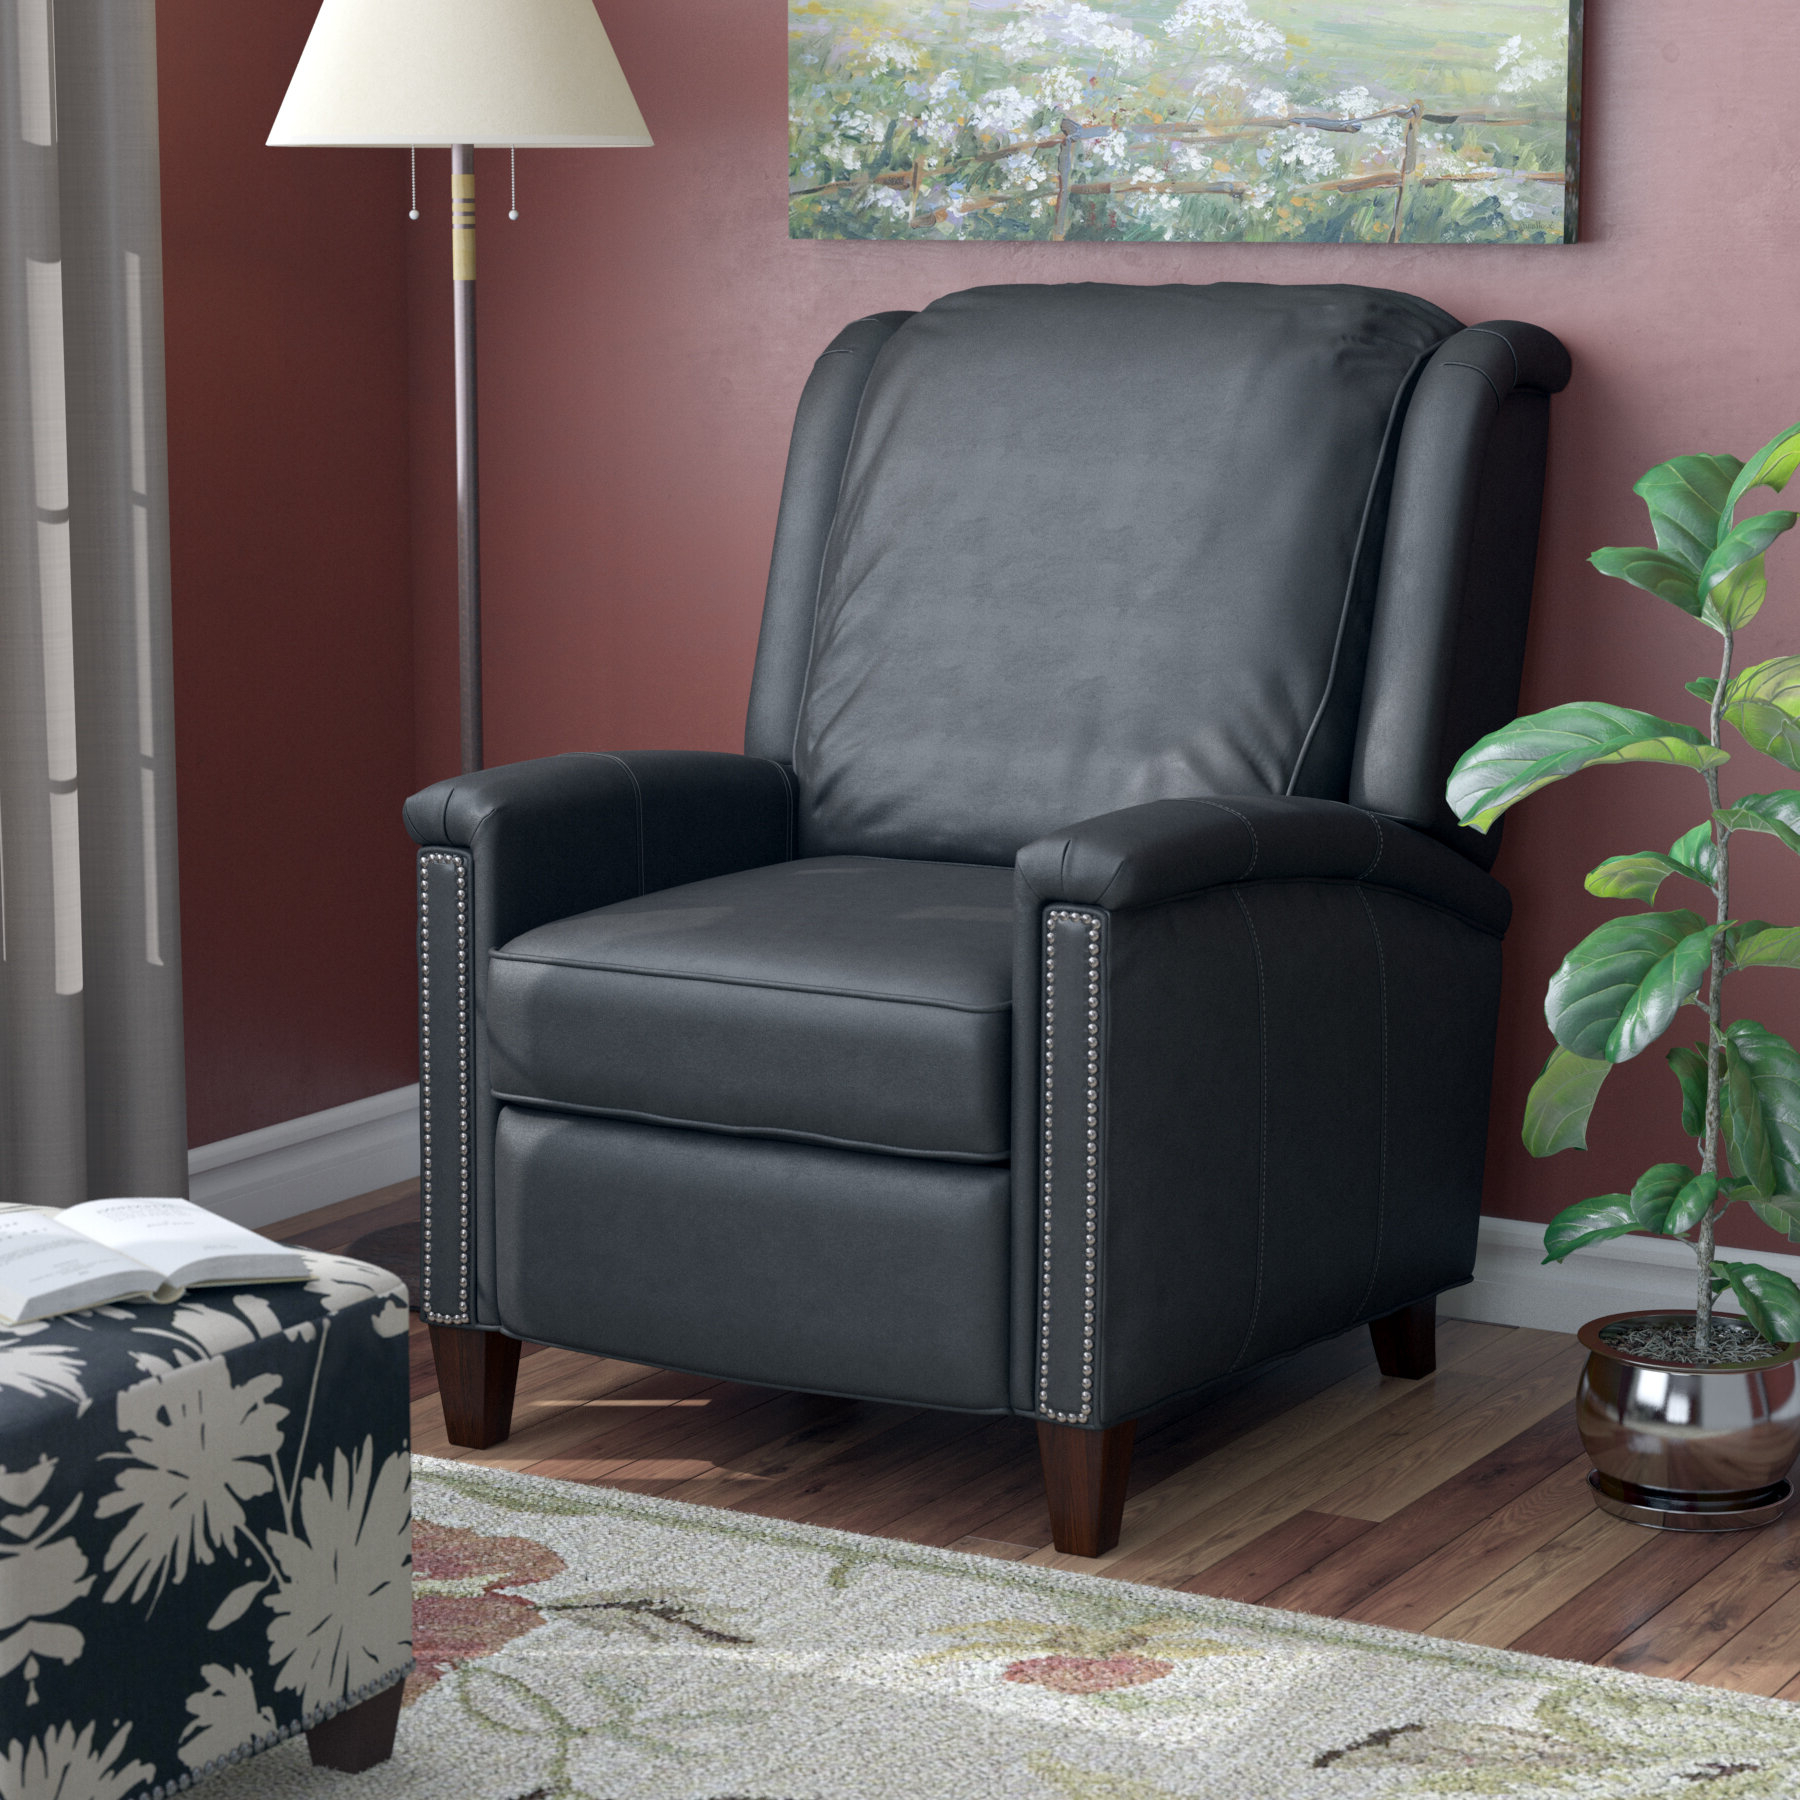 Coomer Faux Leather Barrel Chairs Pertaining To Latest Leather Manual Recliner (View 12 of 20)